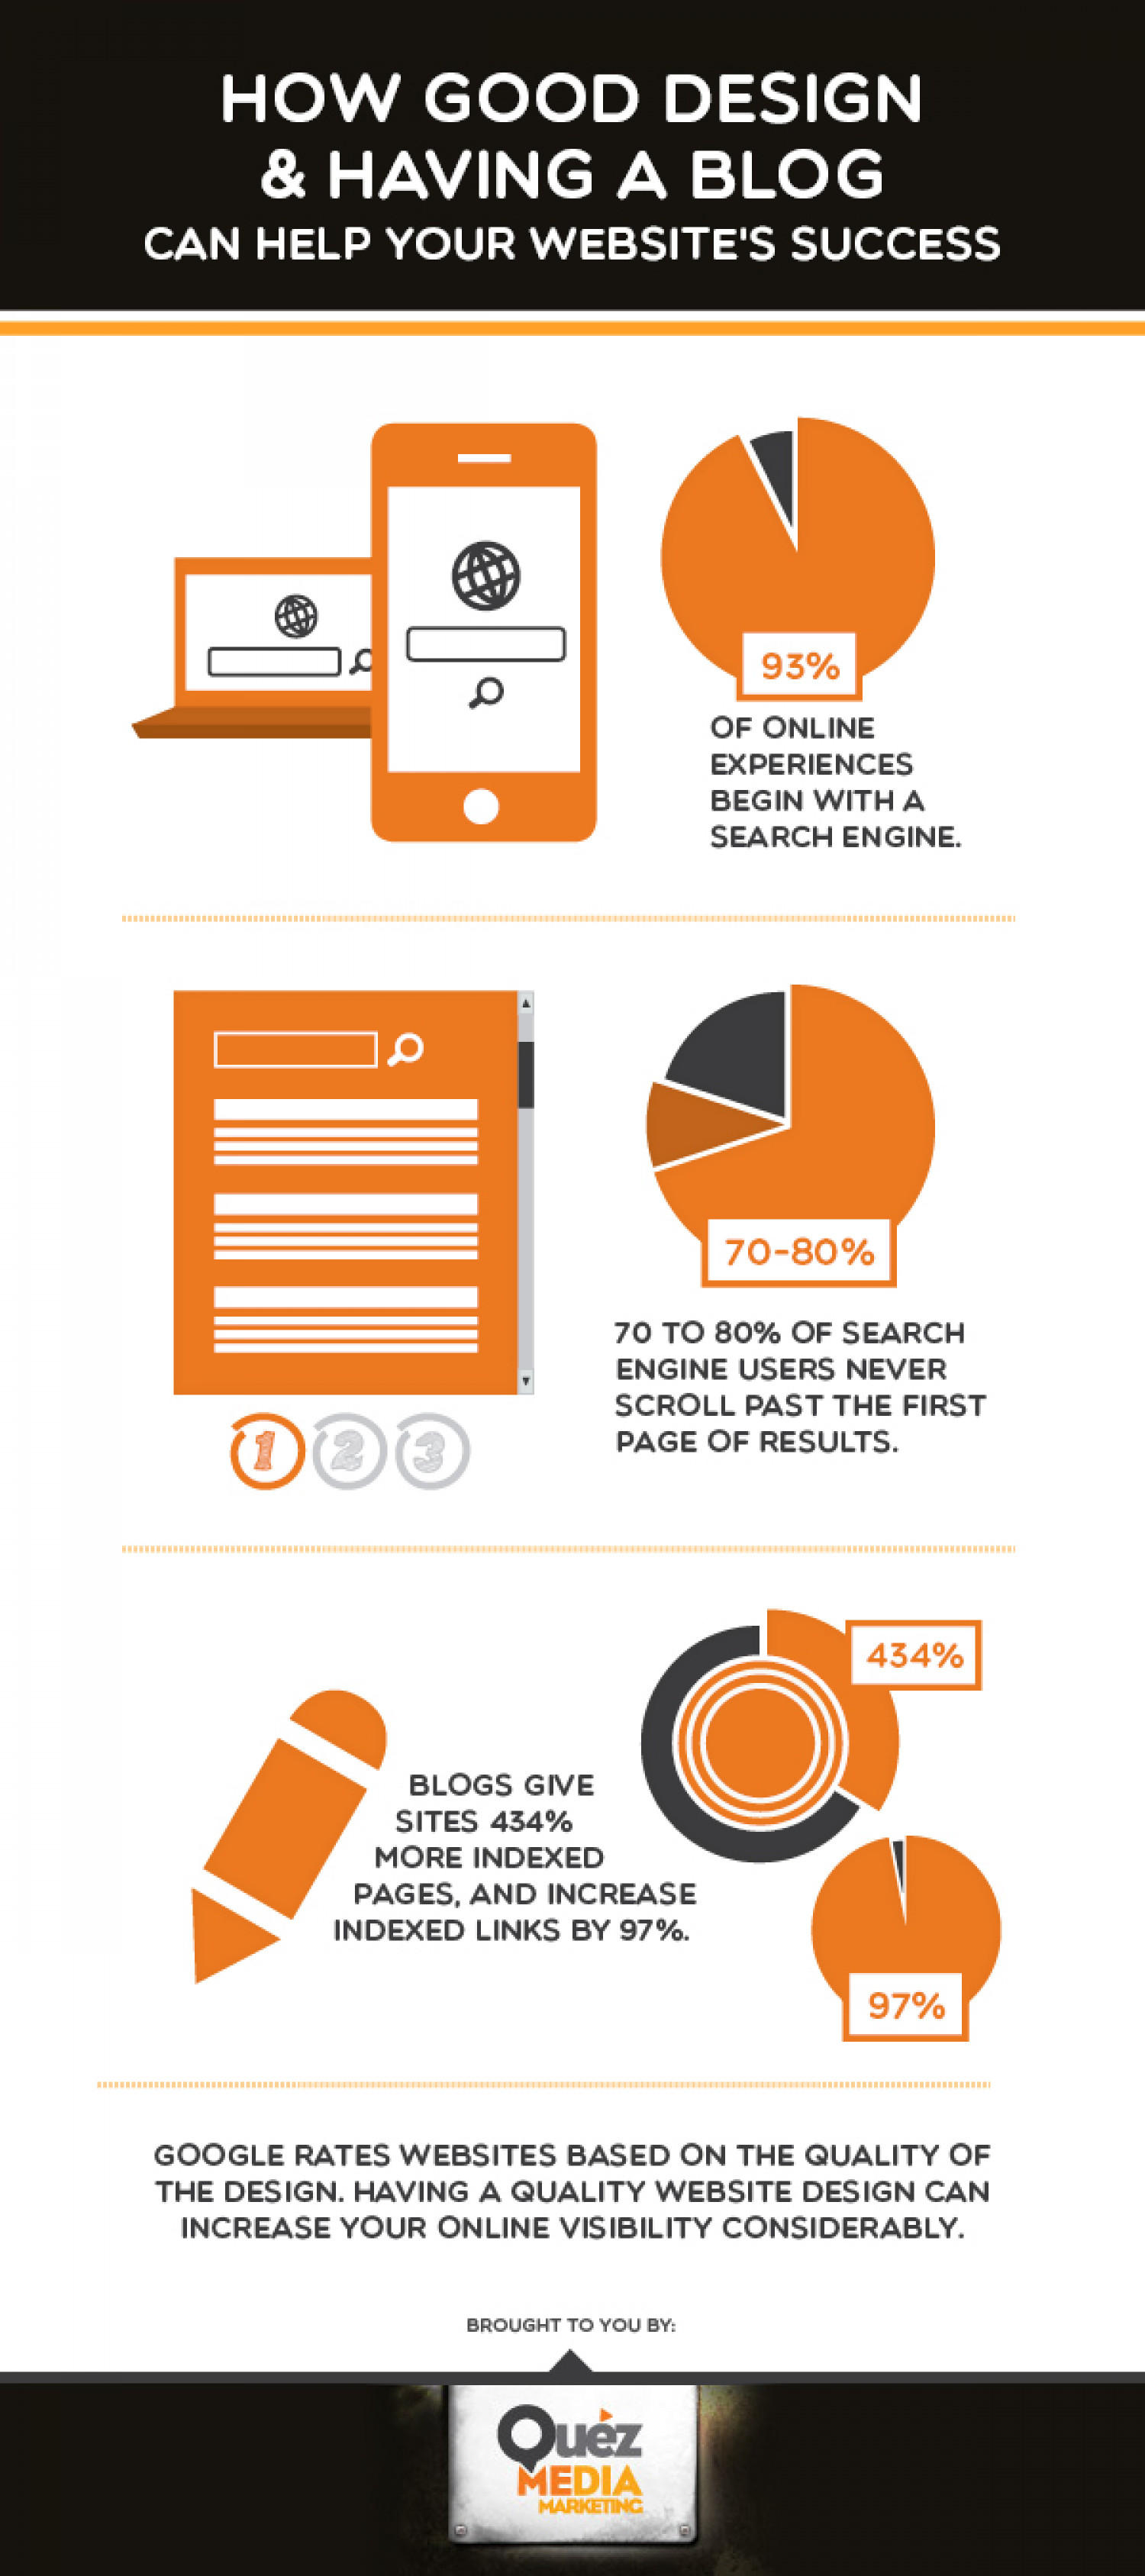 How Good Design & Having A Blog Can Help Your Website's Success Infographic